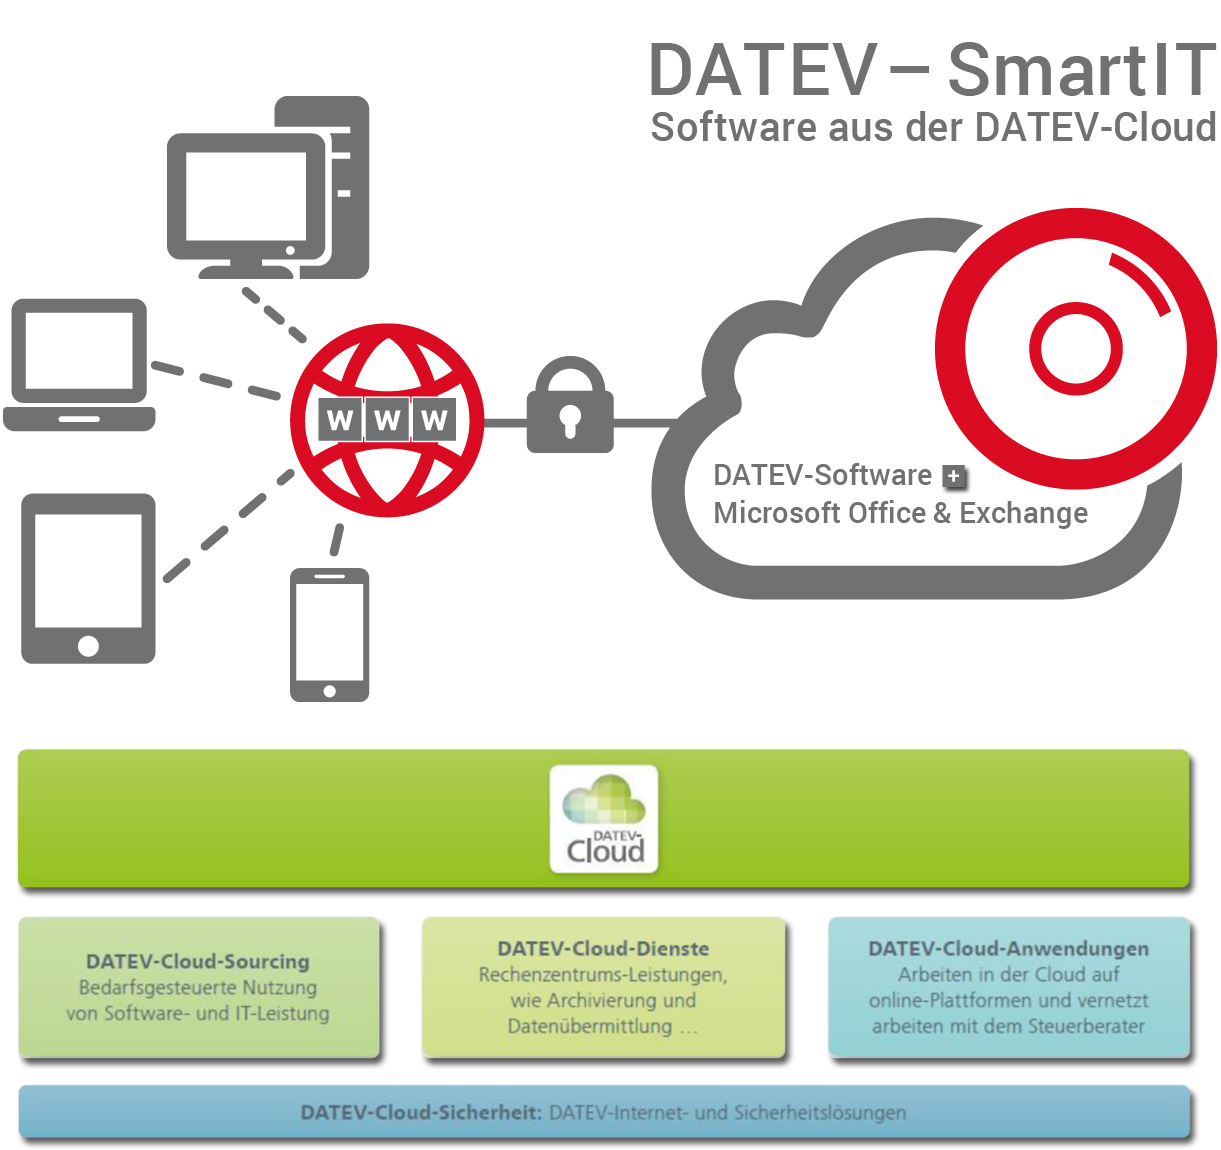 Smart IT und DATEV cloud